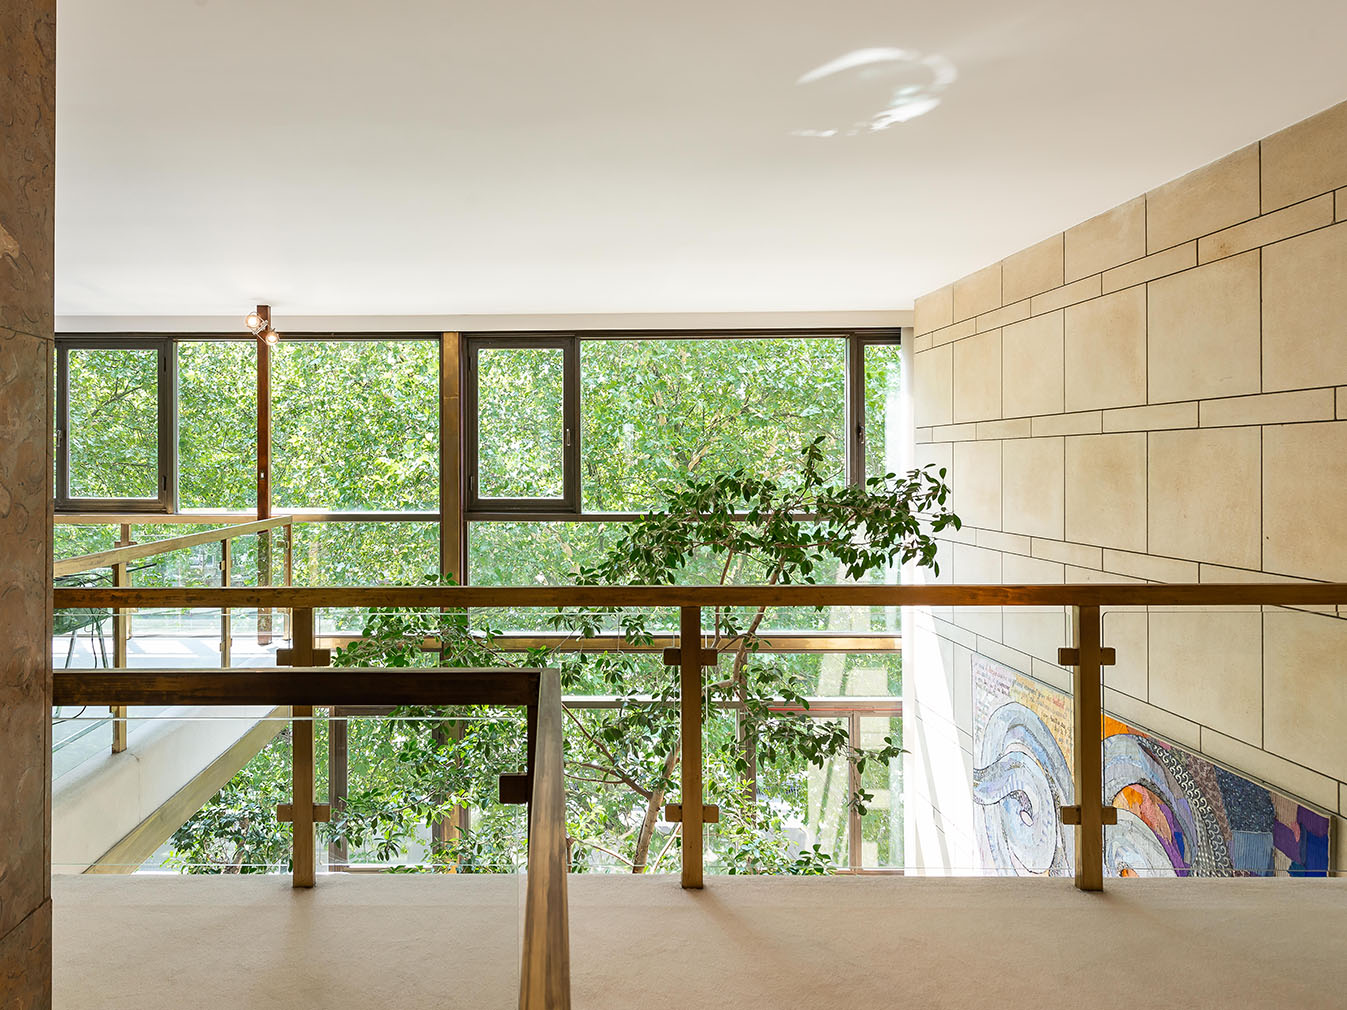 Modernist gem by Jules Wabbes hits the market in Brussels